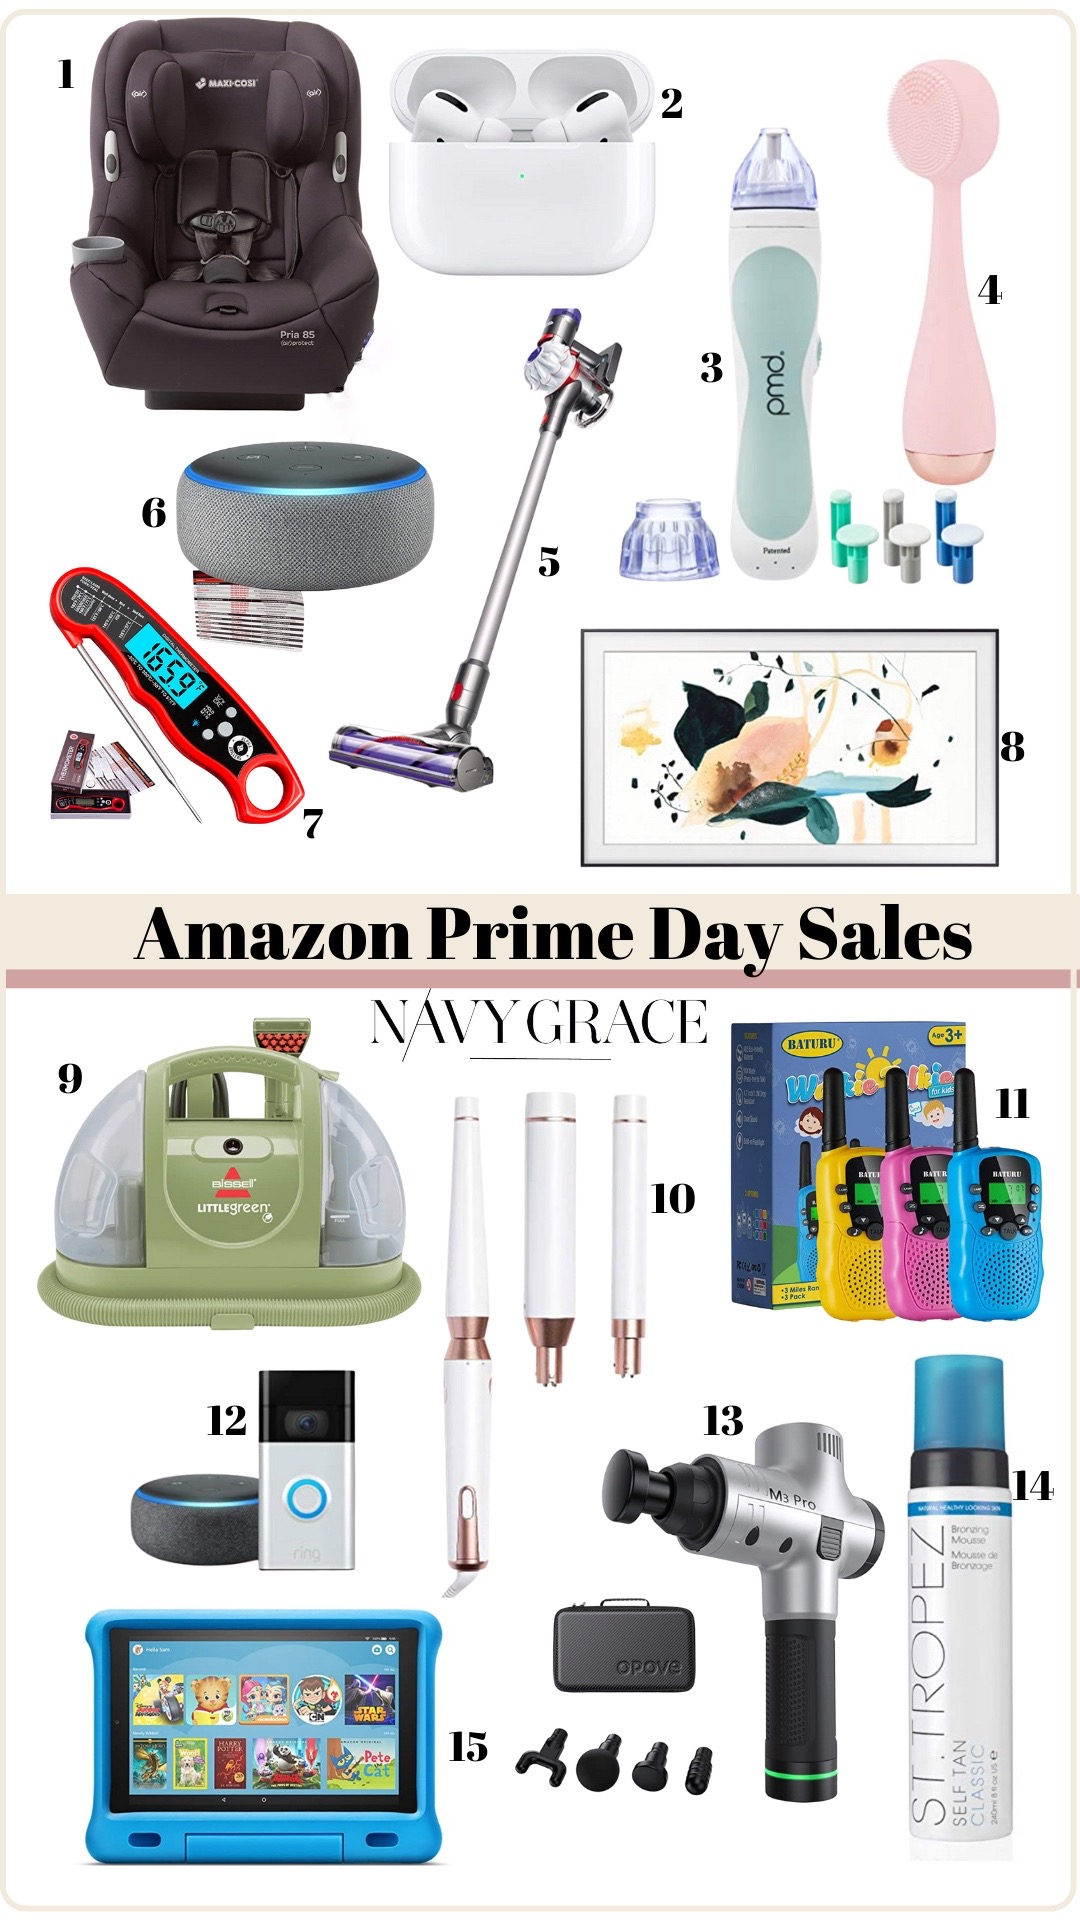 Prime Day by popular San Diego life and style blog, Navy Grace: collage image of a Maxi Cosi carseat, Air Pods, Alexa, Dyson cordless vacuum, meat thermometer, walkie talkies, T3 curling wand, St. Tropez self tanner, Amazon Kindle,SAMSUNG 55-inch Class FRAME QLED LS03 Series, neck massager, Bissell carpet cleaner,PMD Personal Microderm Classic and PMD Clean